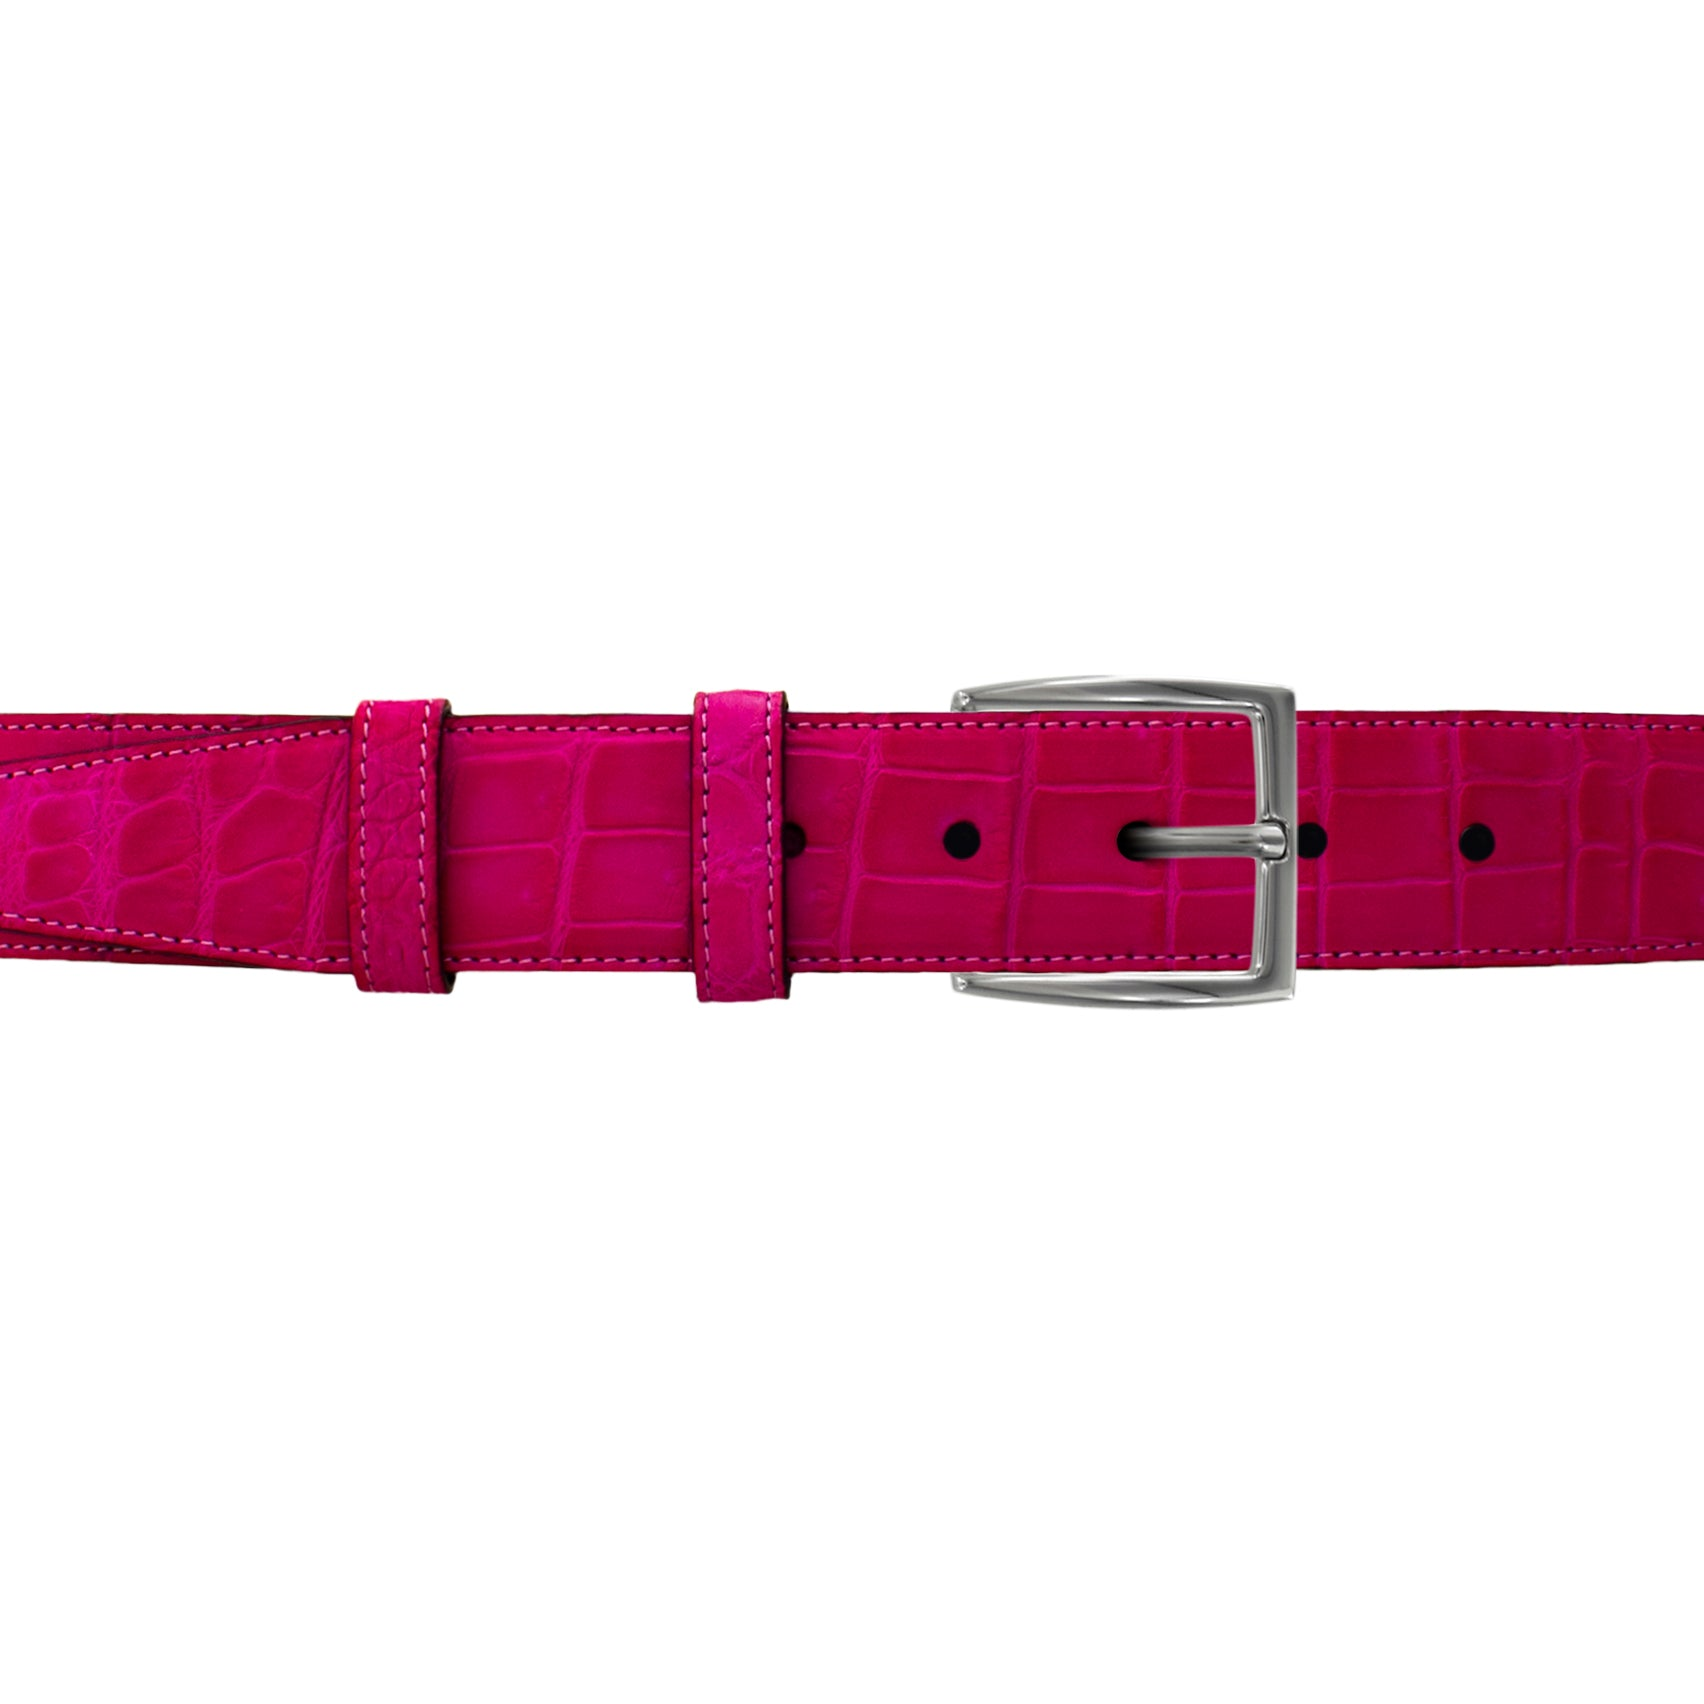 "1 1/2"" Magenta Seasonal Belt with Winston Dress Buckle in Matt Nickel"